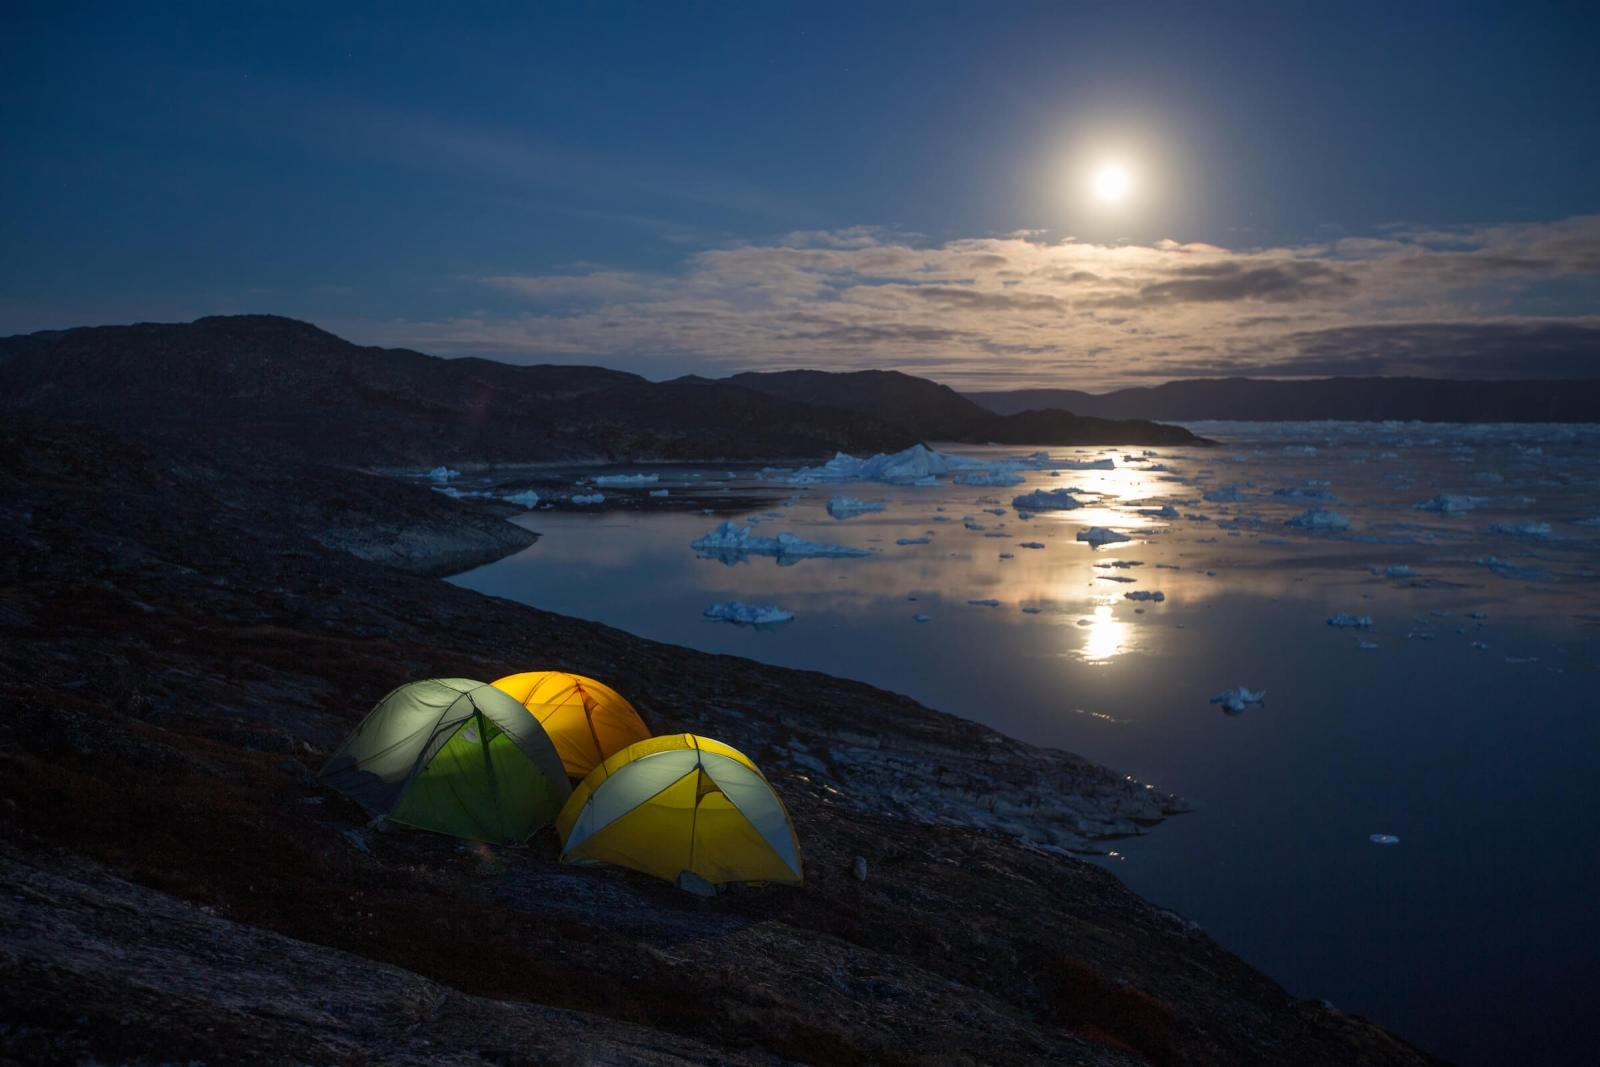 Three tents standing together overlooking the Ilulissat Icefjord in North Greenland under a moonlight sky. By Paul Zizka